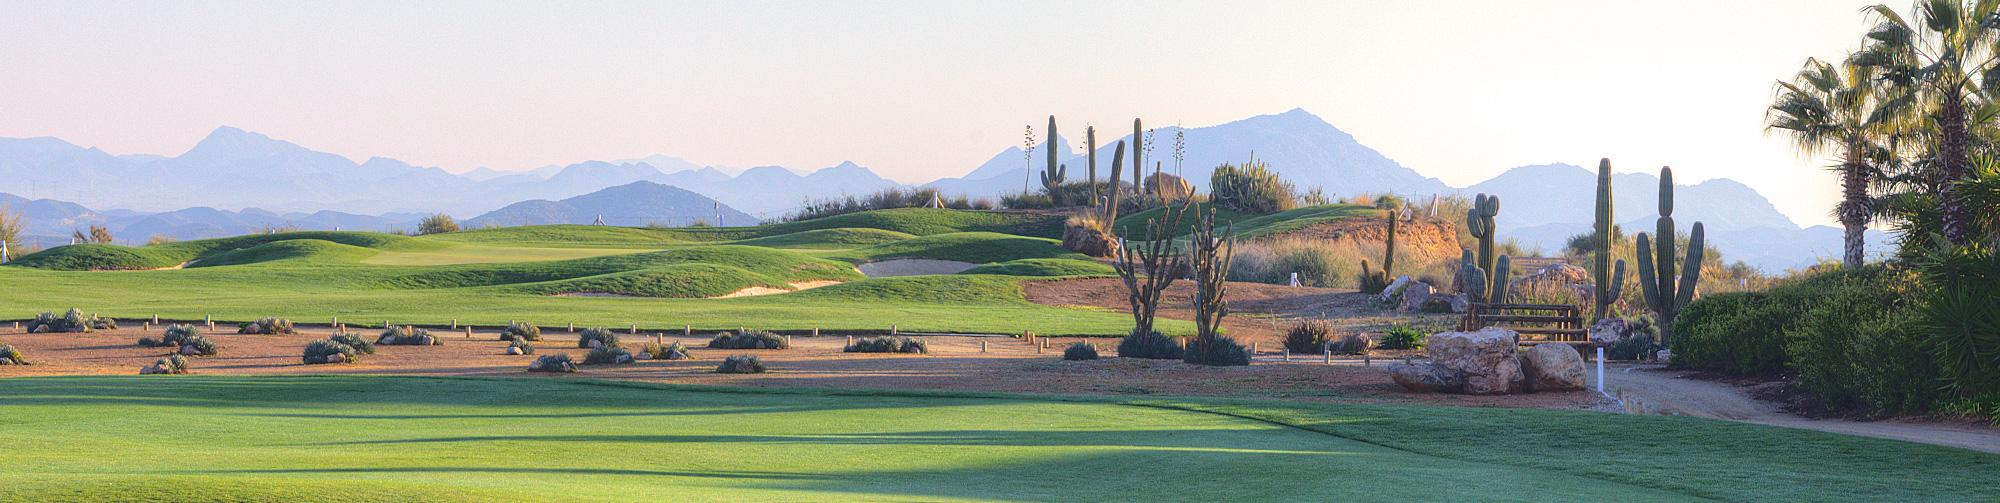 The Desert Springs Golf Club's picturesque golf course in gorgeous Costa Almeria.